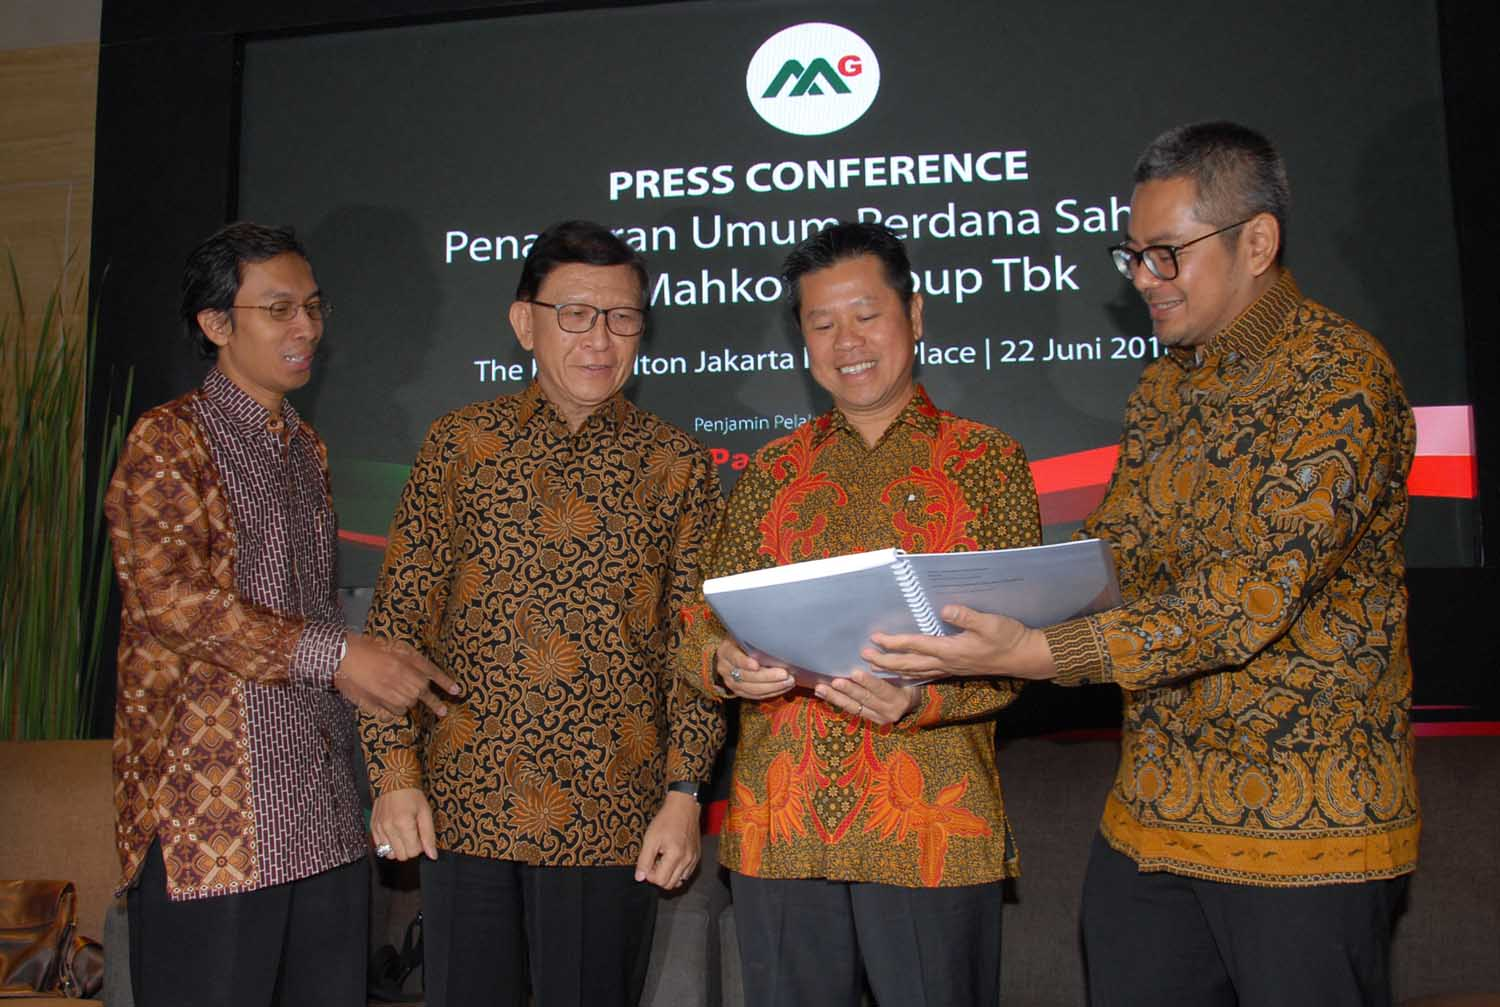 MGRO Siapkan Capex Rp 200 M